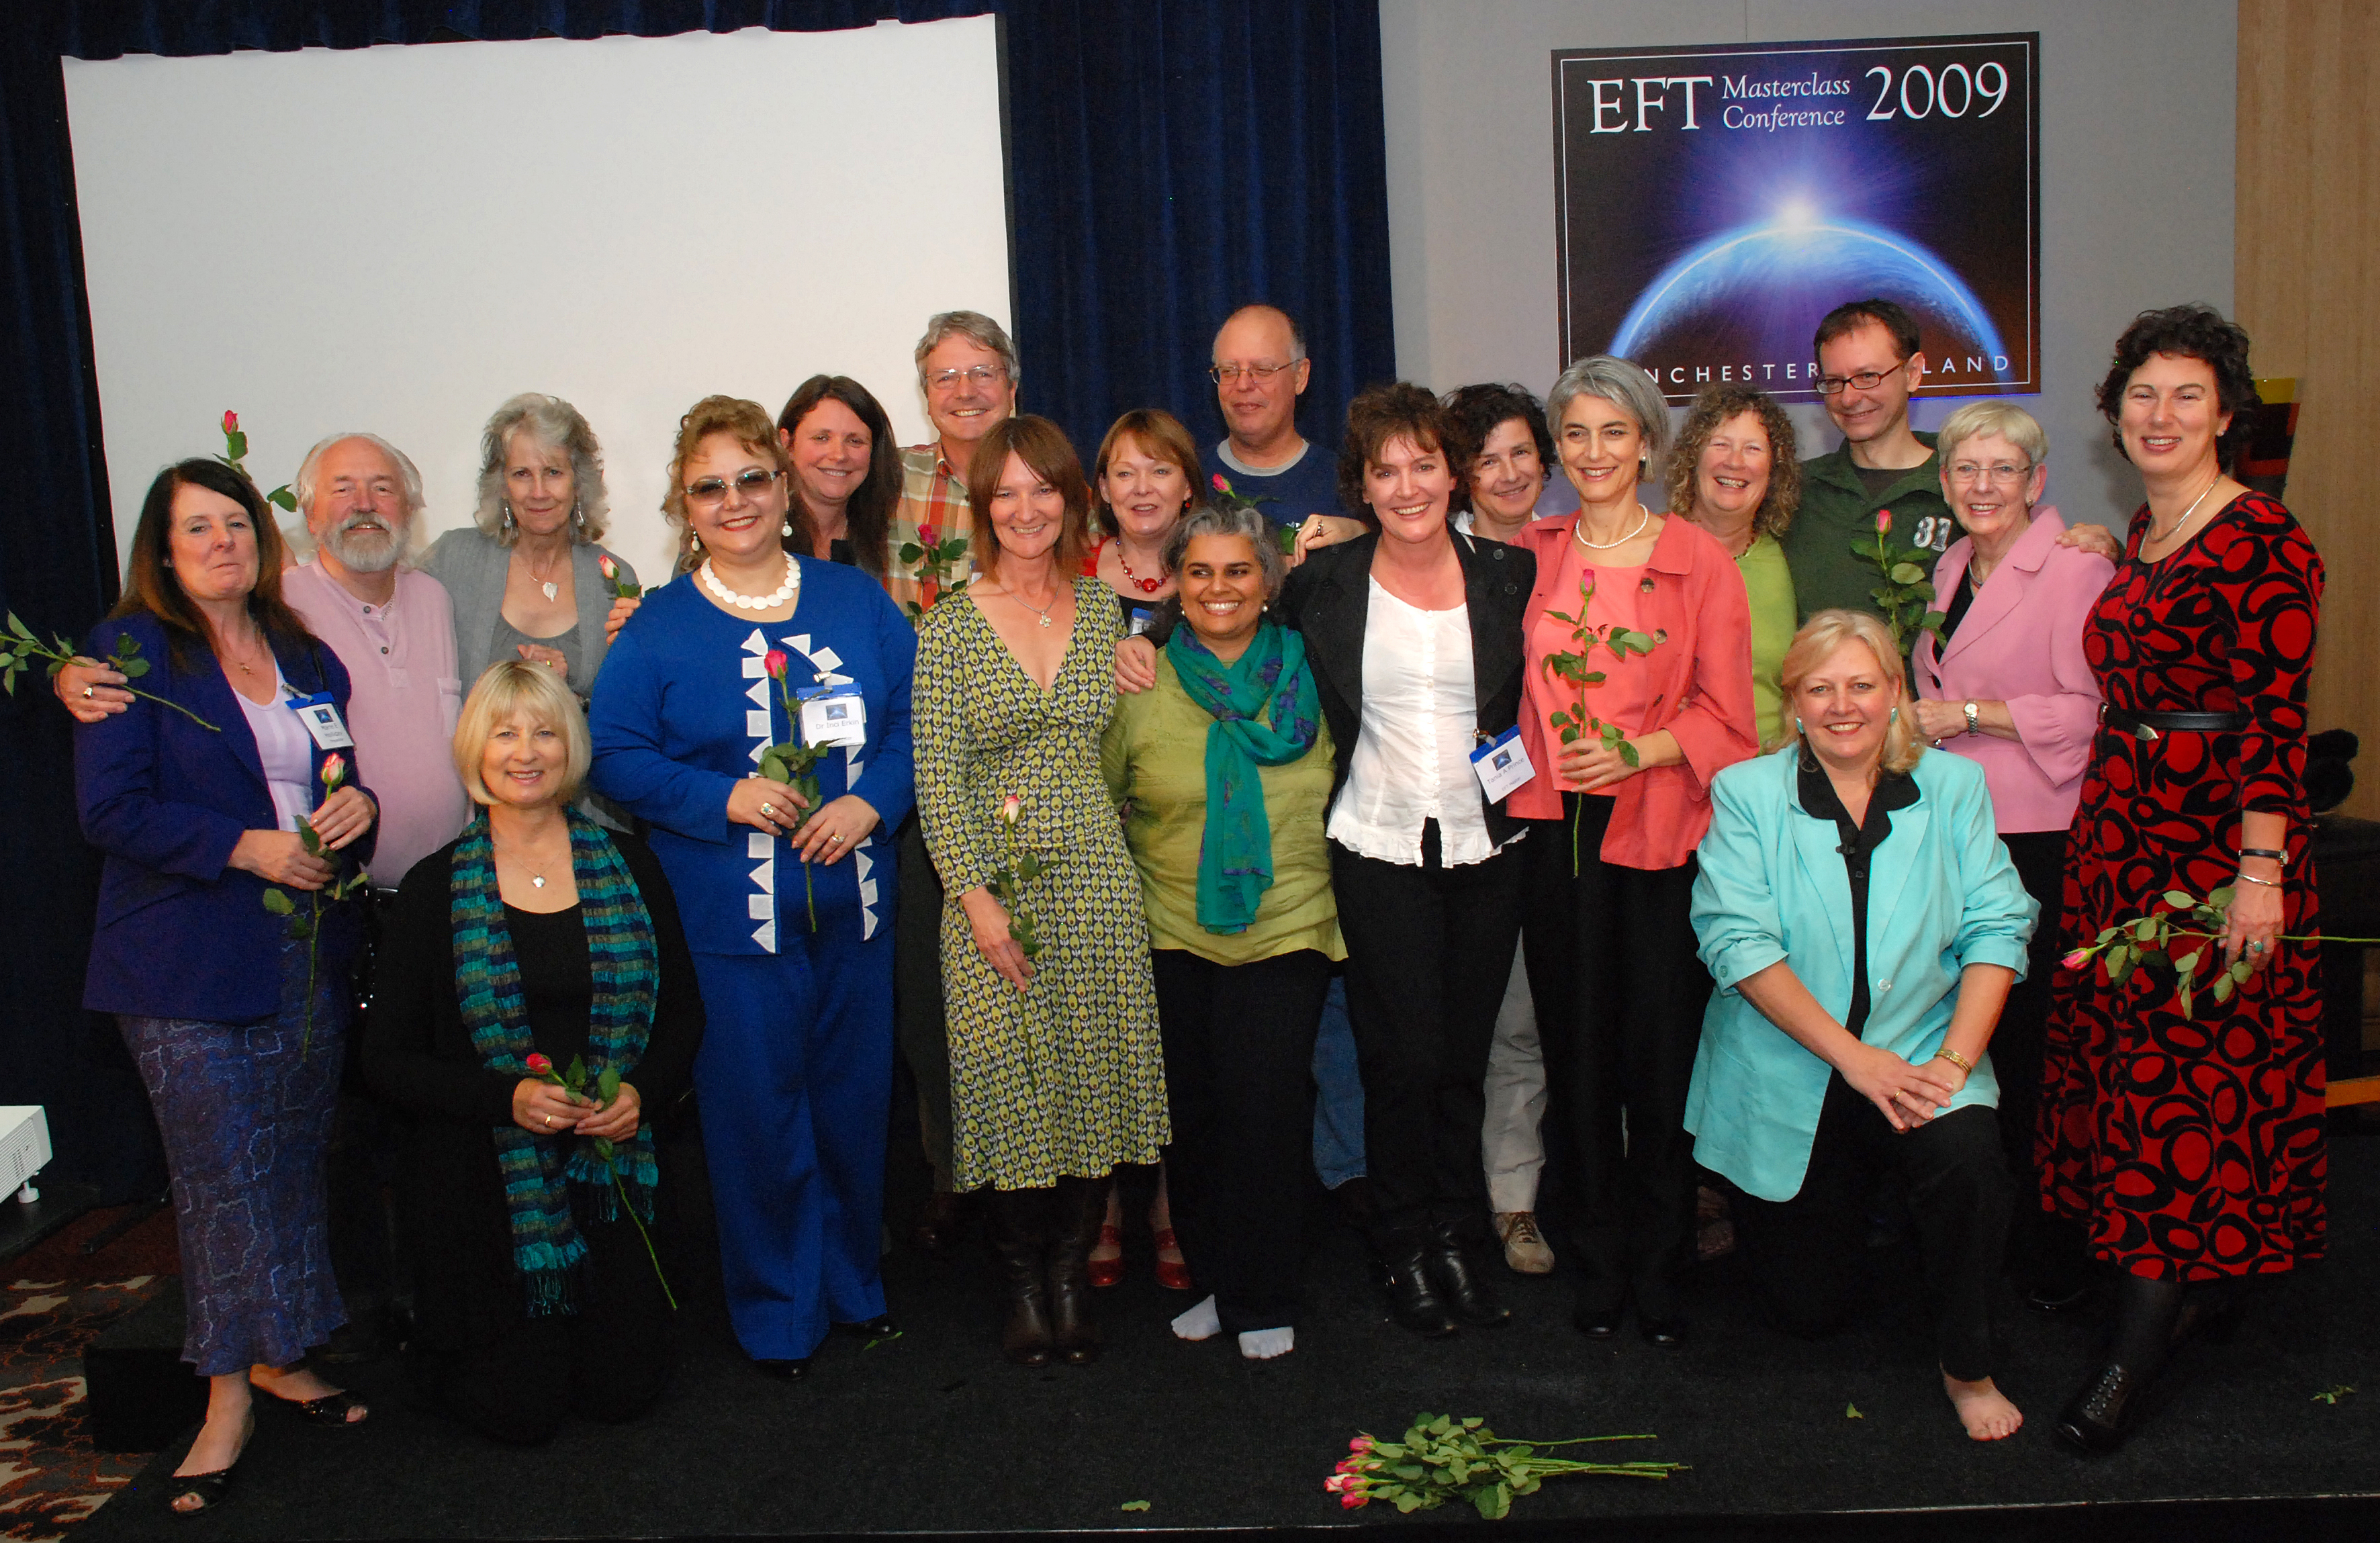 EFT Master, Tania A.Prince with other EFT Masters during the EFT Masterclass Conference 2009